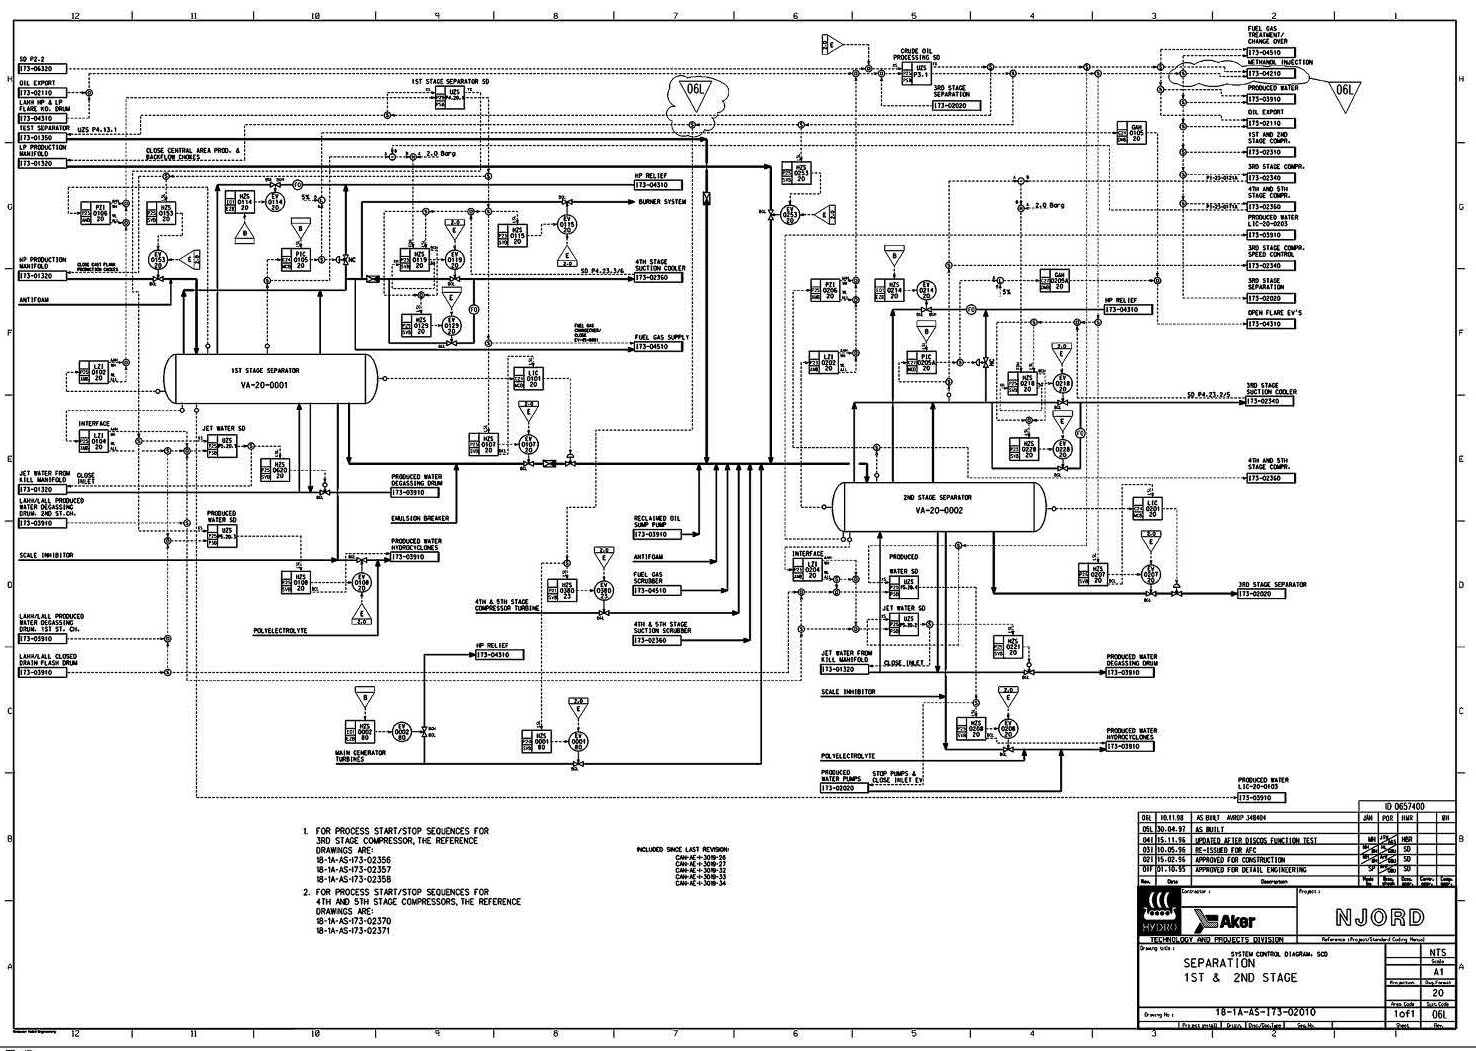 Natural Gas Pipeline Compressor Station Schematic